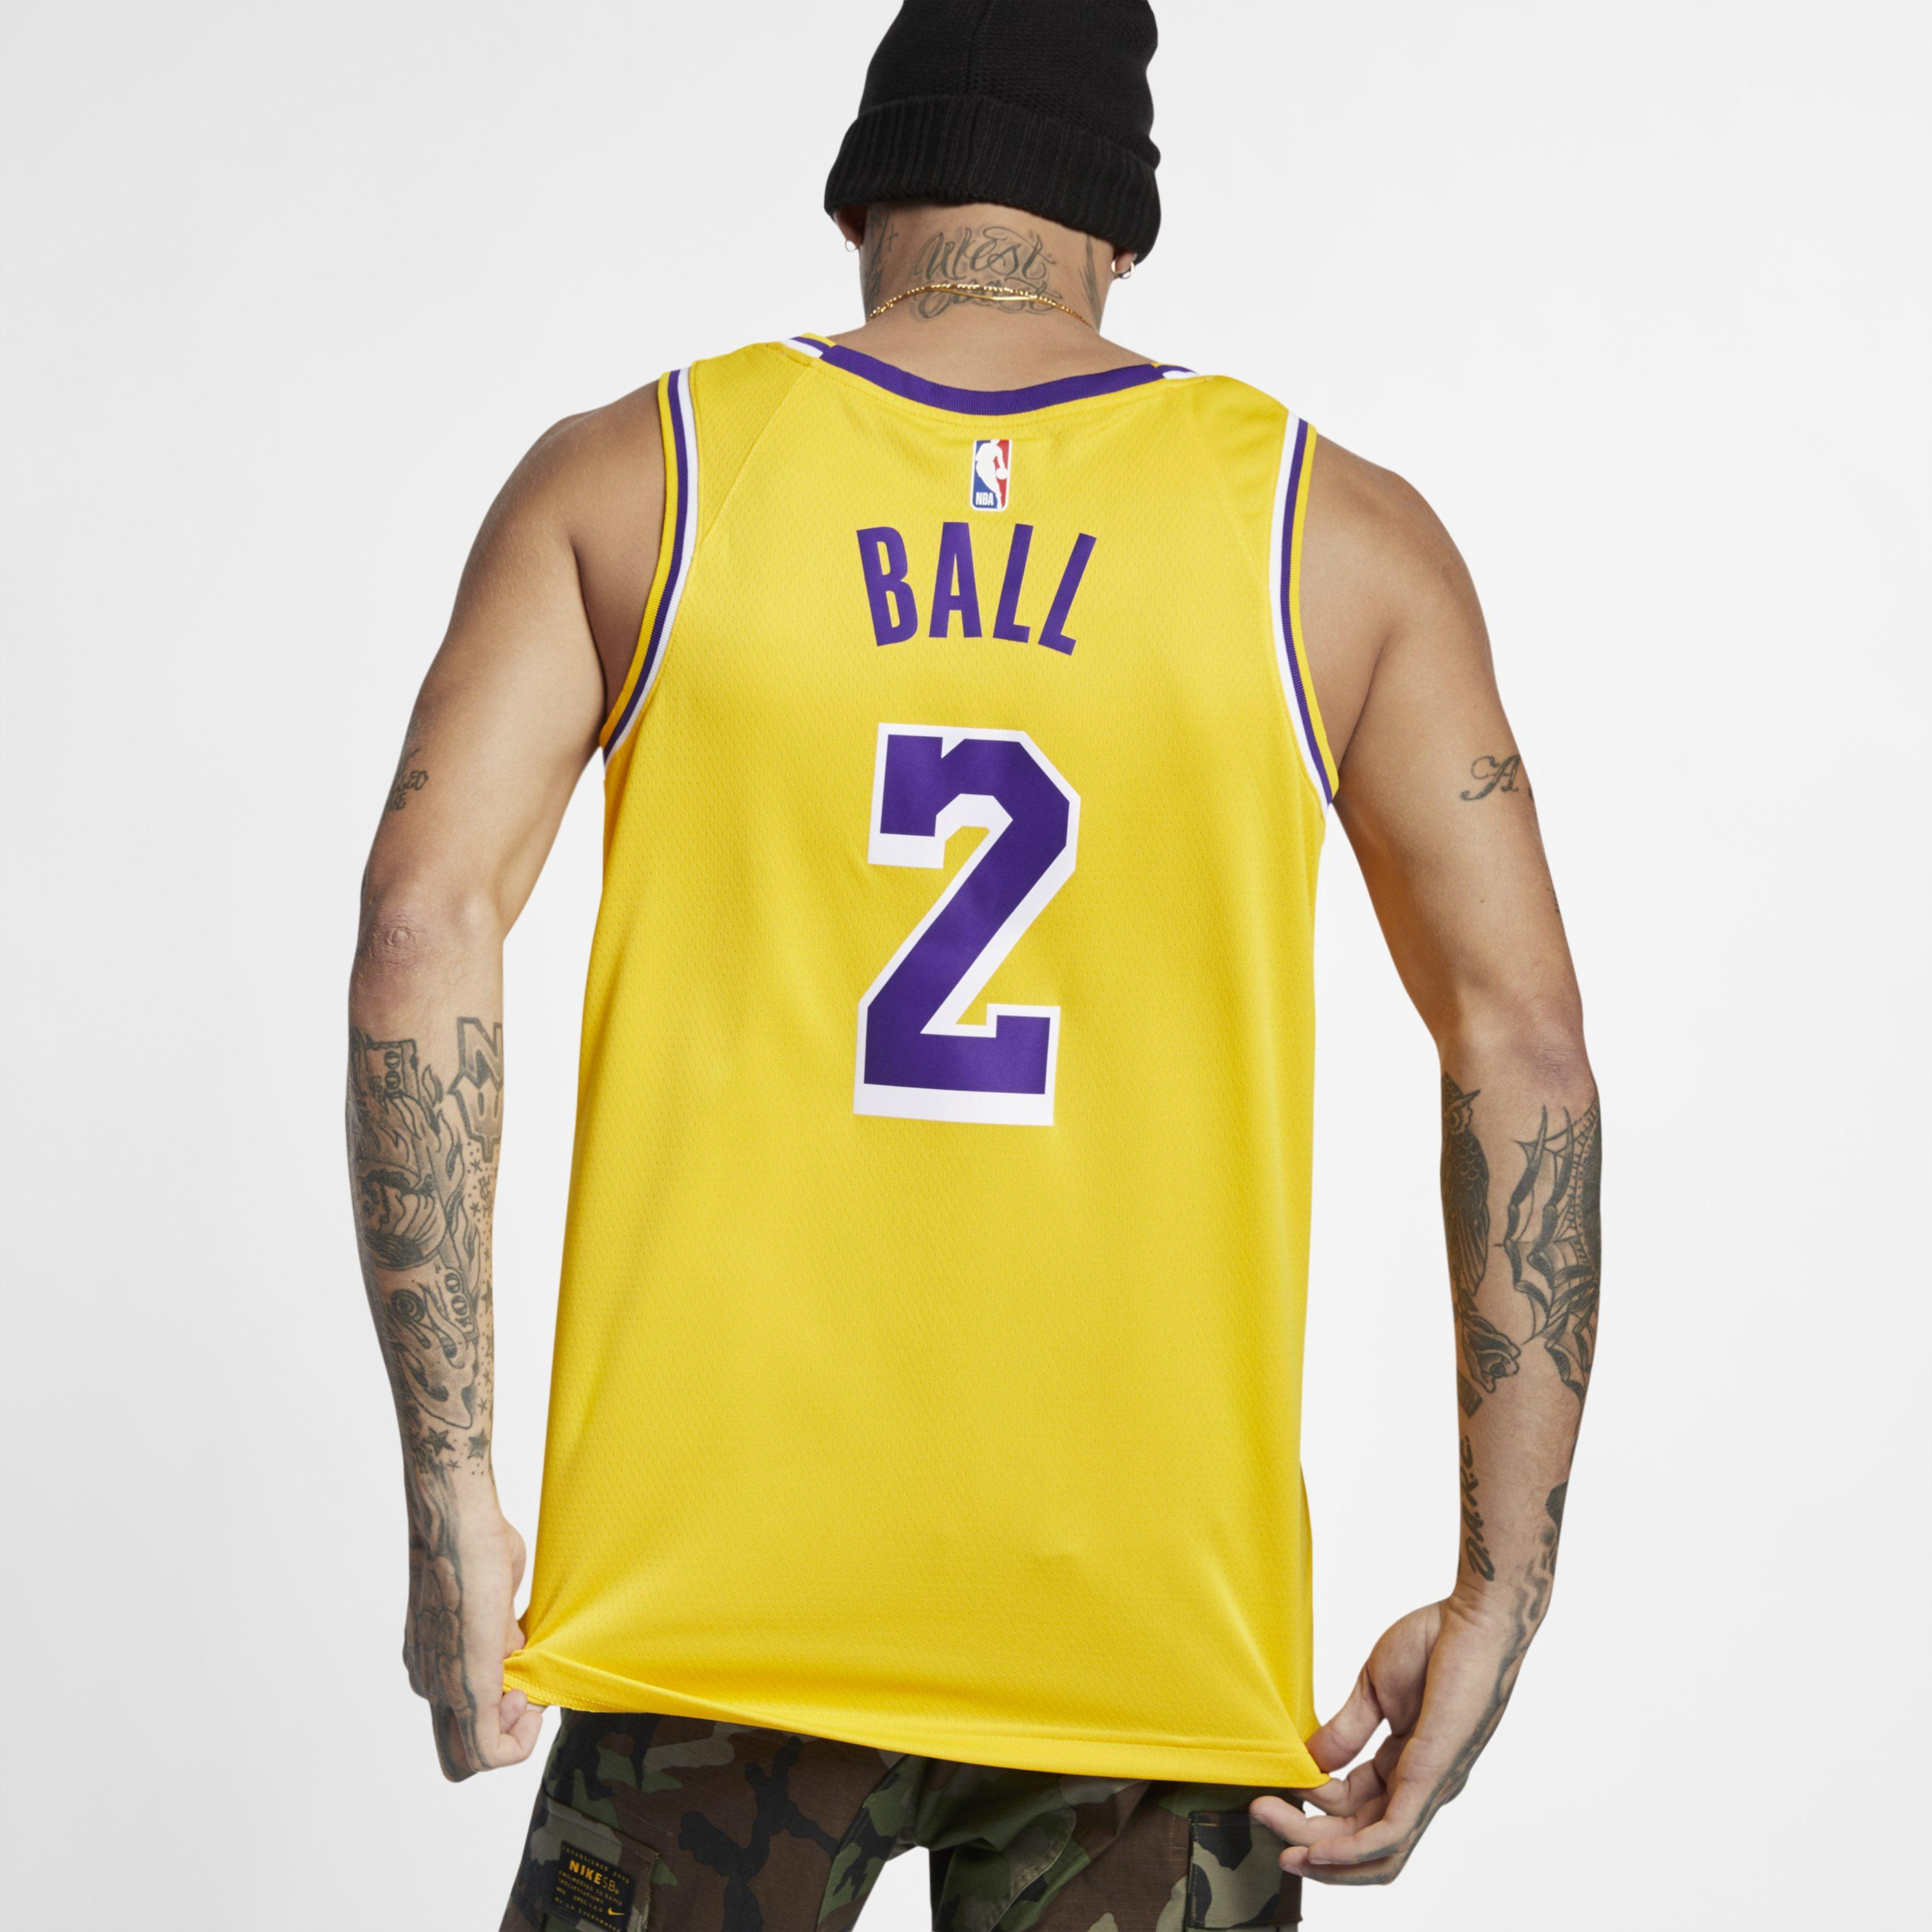 8b78511db045 Nike - Yellow Lonzo Ball Icon Edition Swingman (los Angeles Lakers) Nba  Connected Jersey. View fullscreen